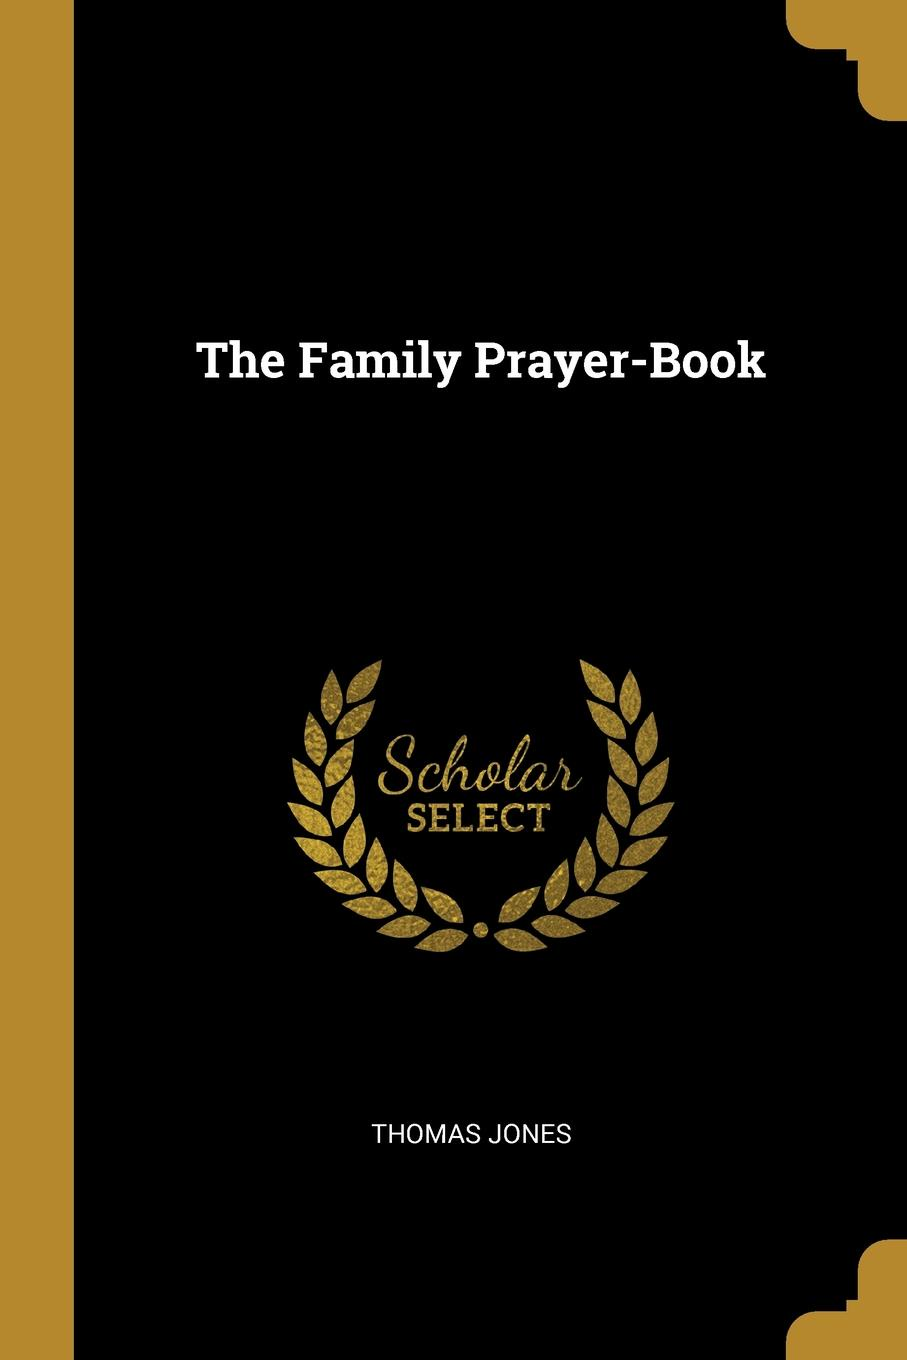 The Family Prayer-Book